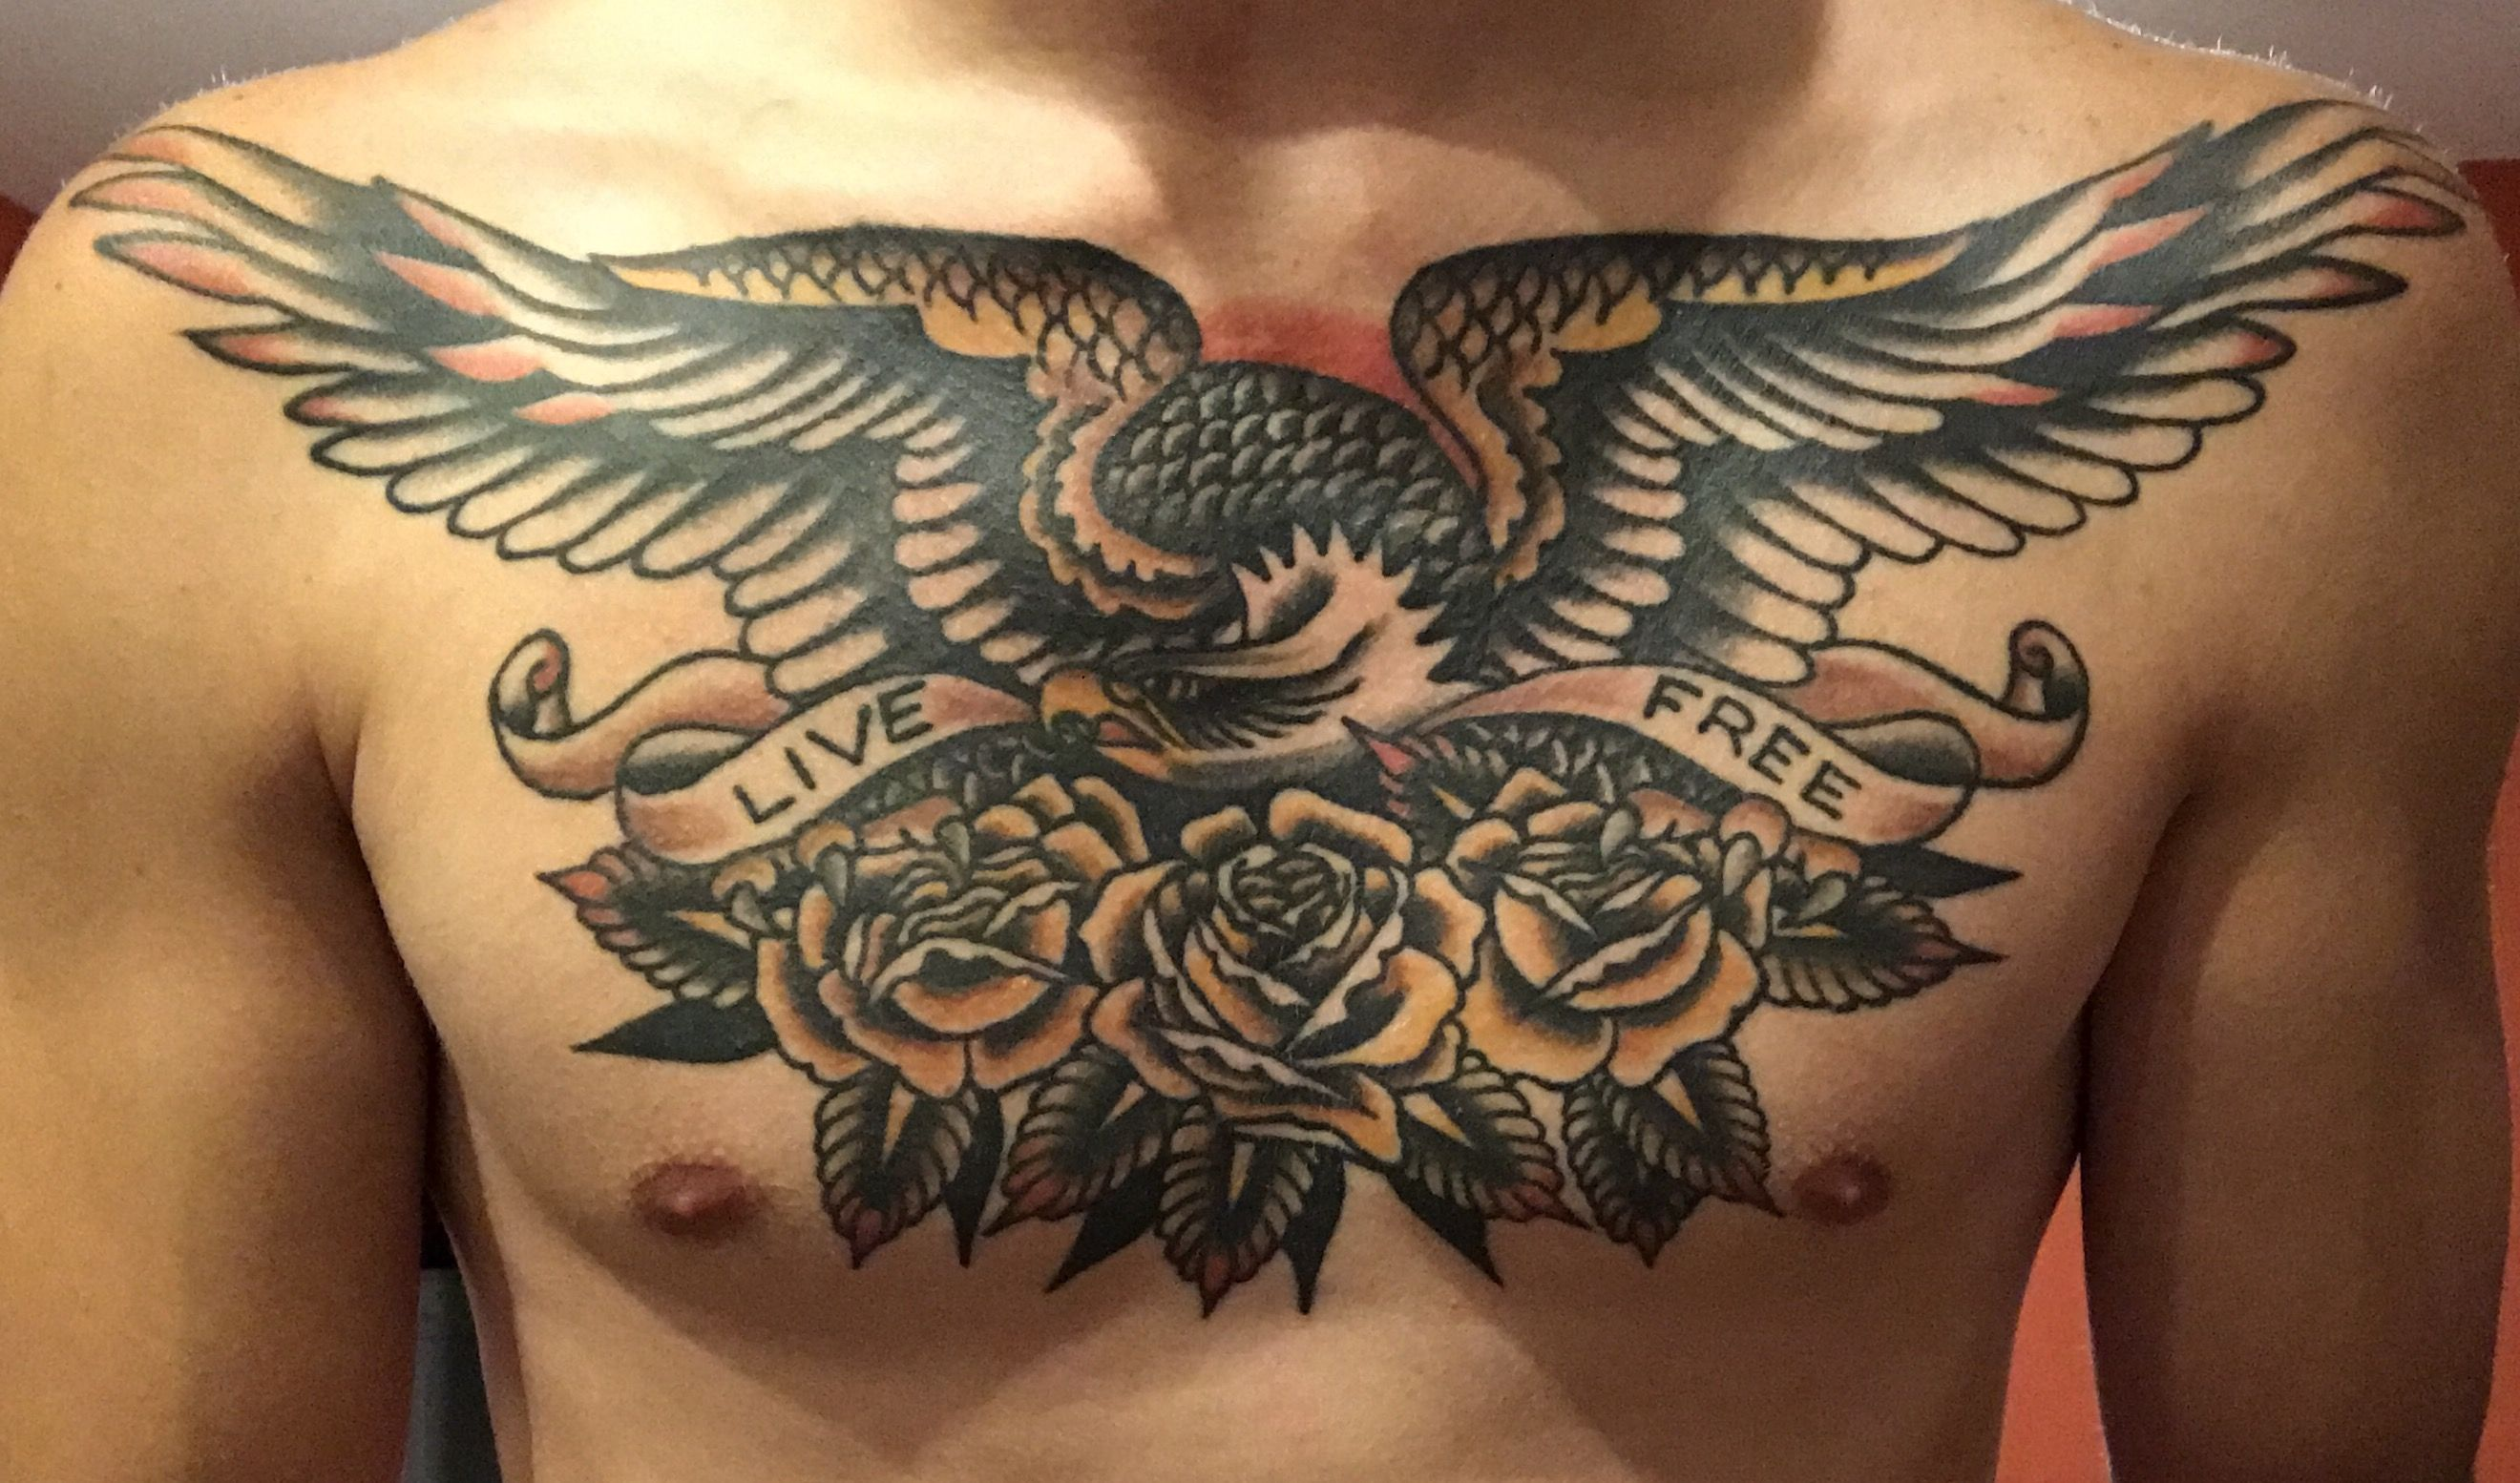 American Traditional Skull And Eagle: Chest Tattoo, Traditional Tattoo